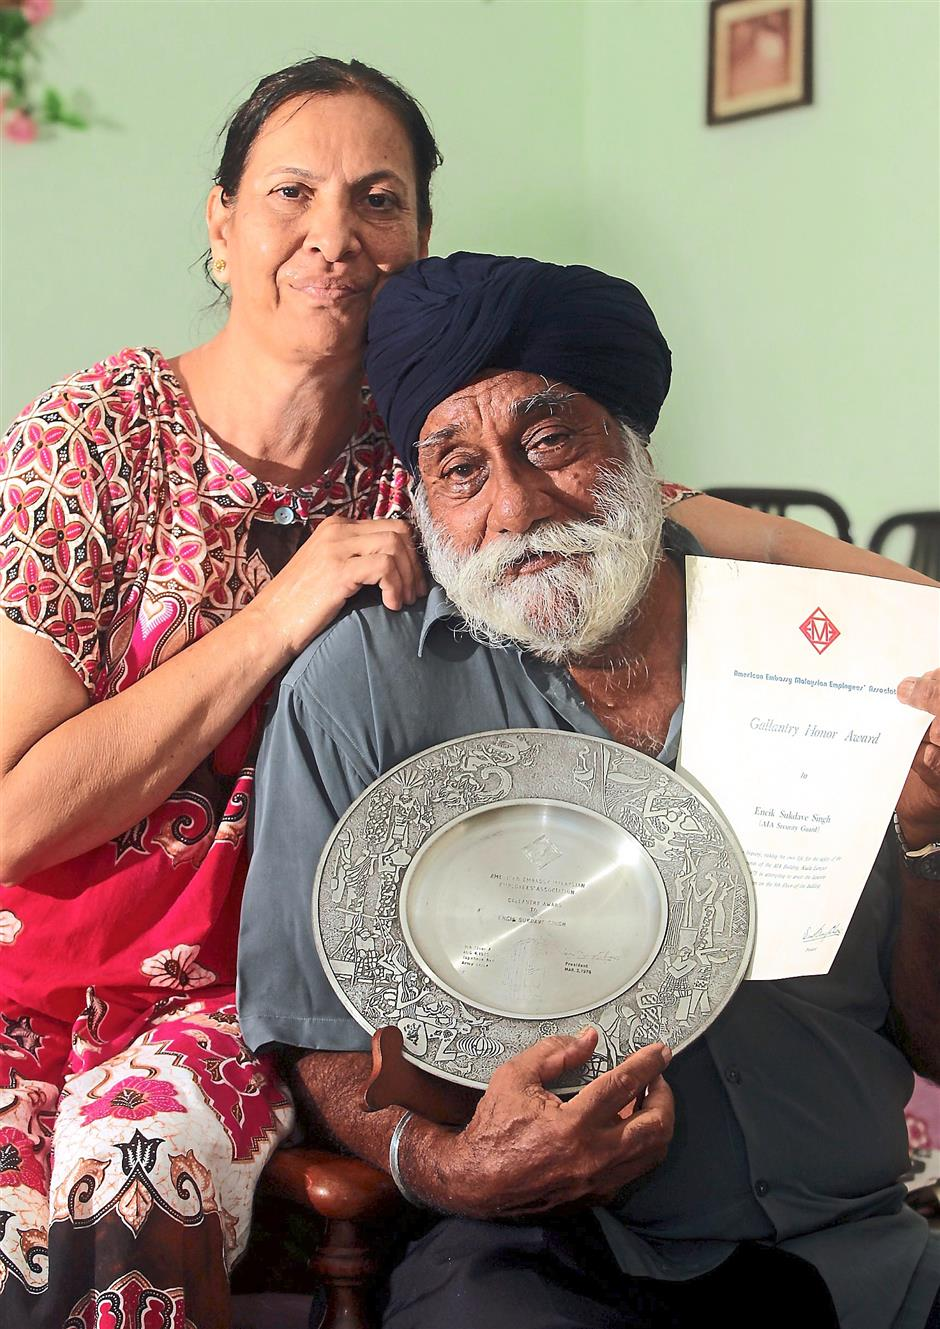 Mementos: Sukdave and his wife Kuldip with the pewter plaque and Gallantry Honour Award from the American Embassy Employees Association. Photos: ART CHEN/The Star